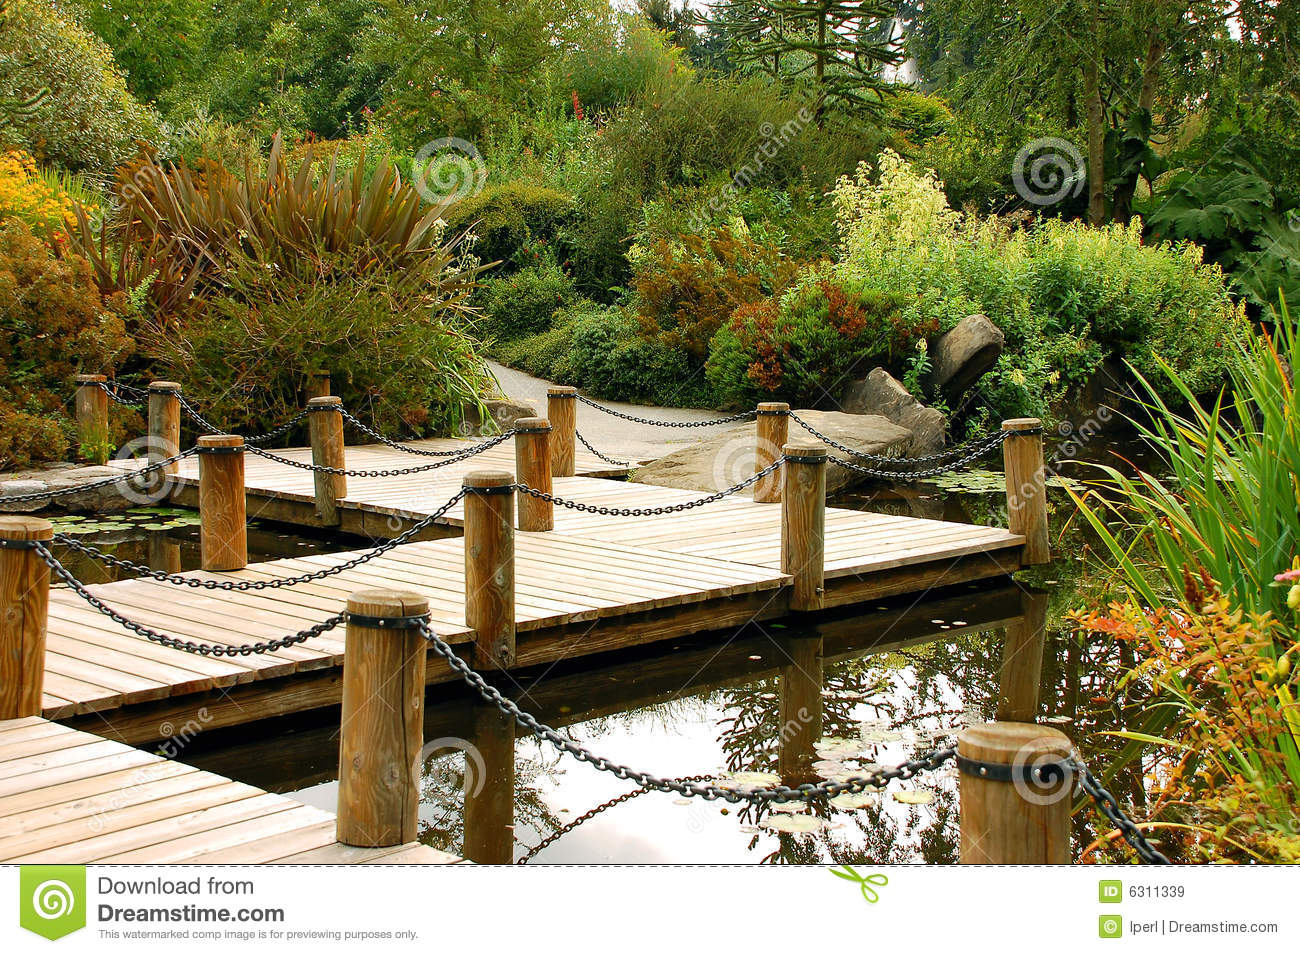 Dock on garden pond stock image image of dock path for Pond pier plans